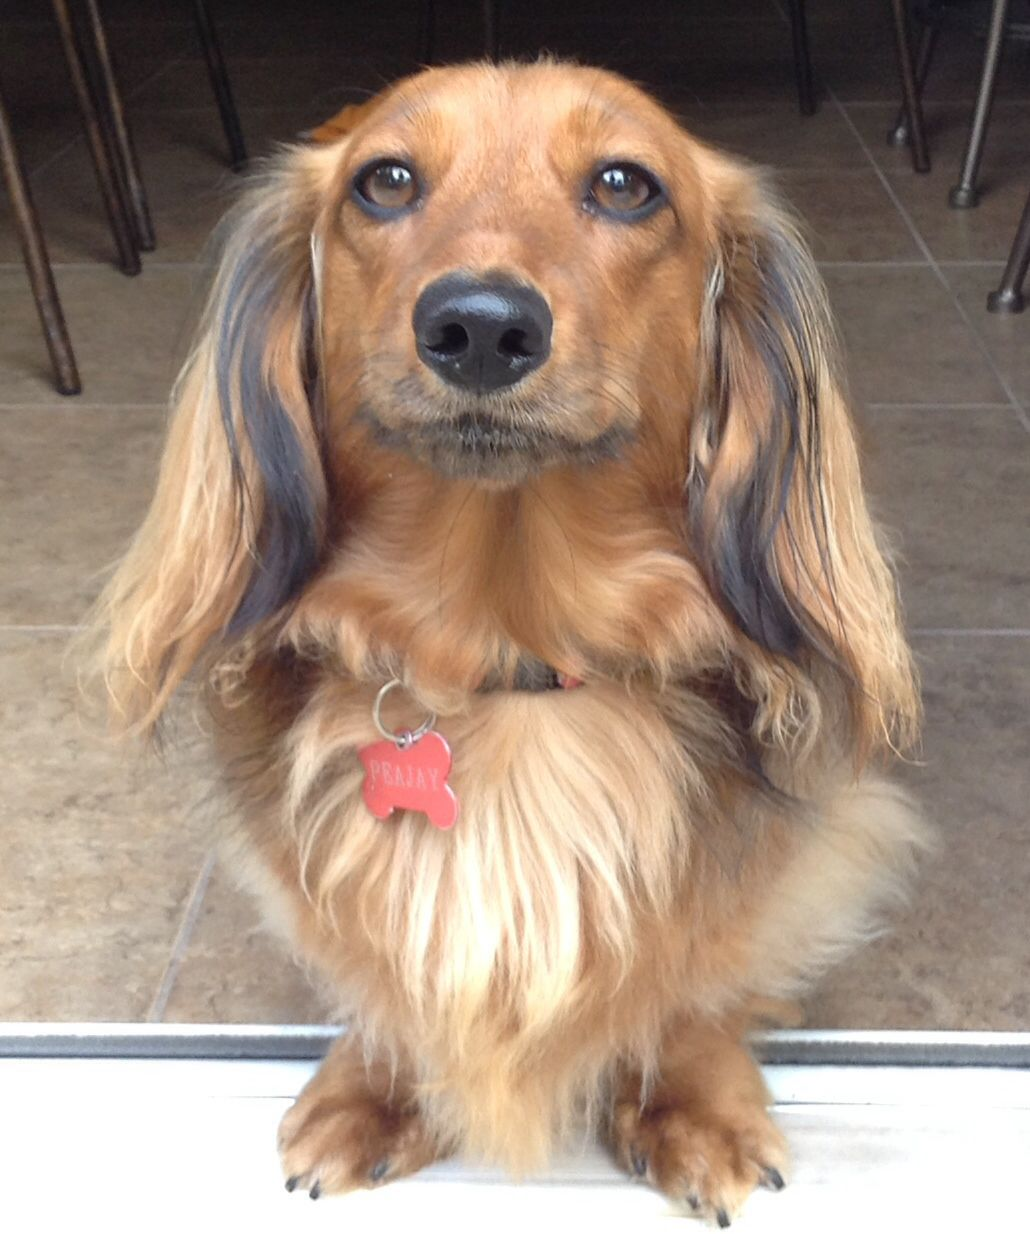 Longhaired dachshund. Hope you're doing well.From your